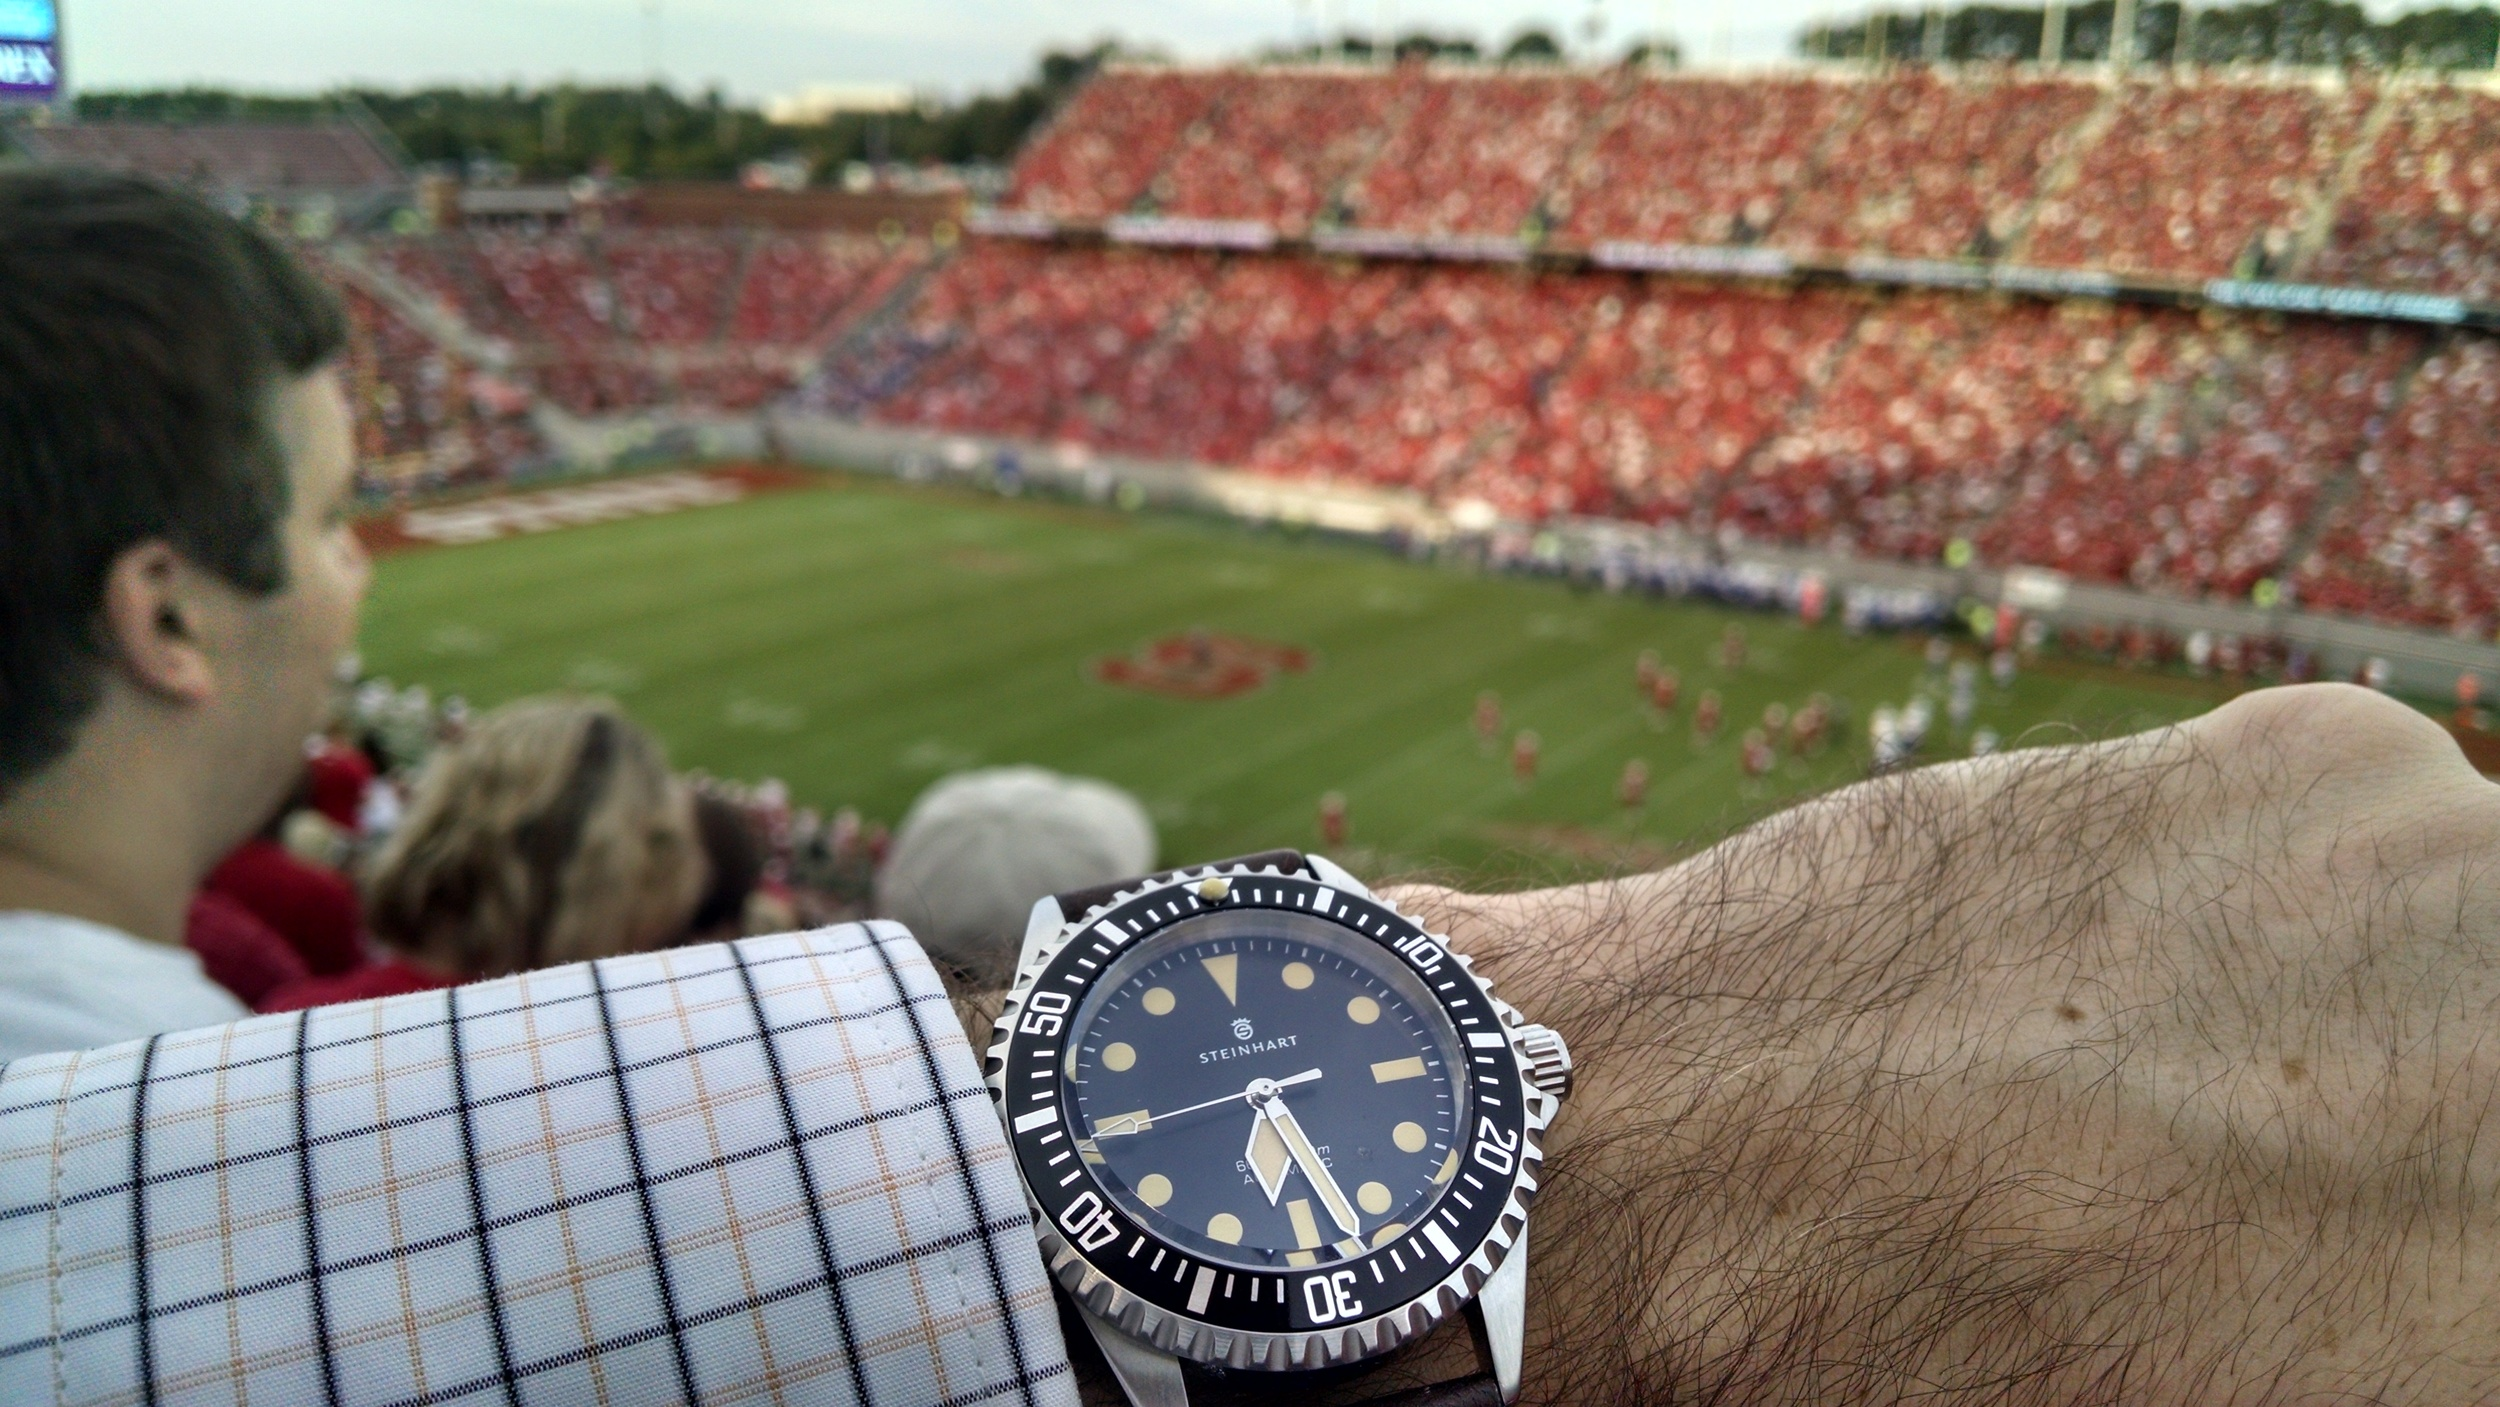 Steinhart Ocean Vintage Military submariner  Carter-Finley Stadium, NC State University  Raleigh, North Carolina